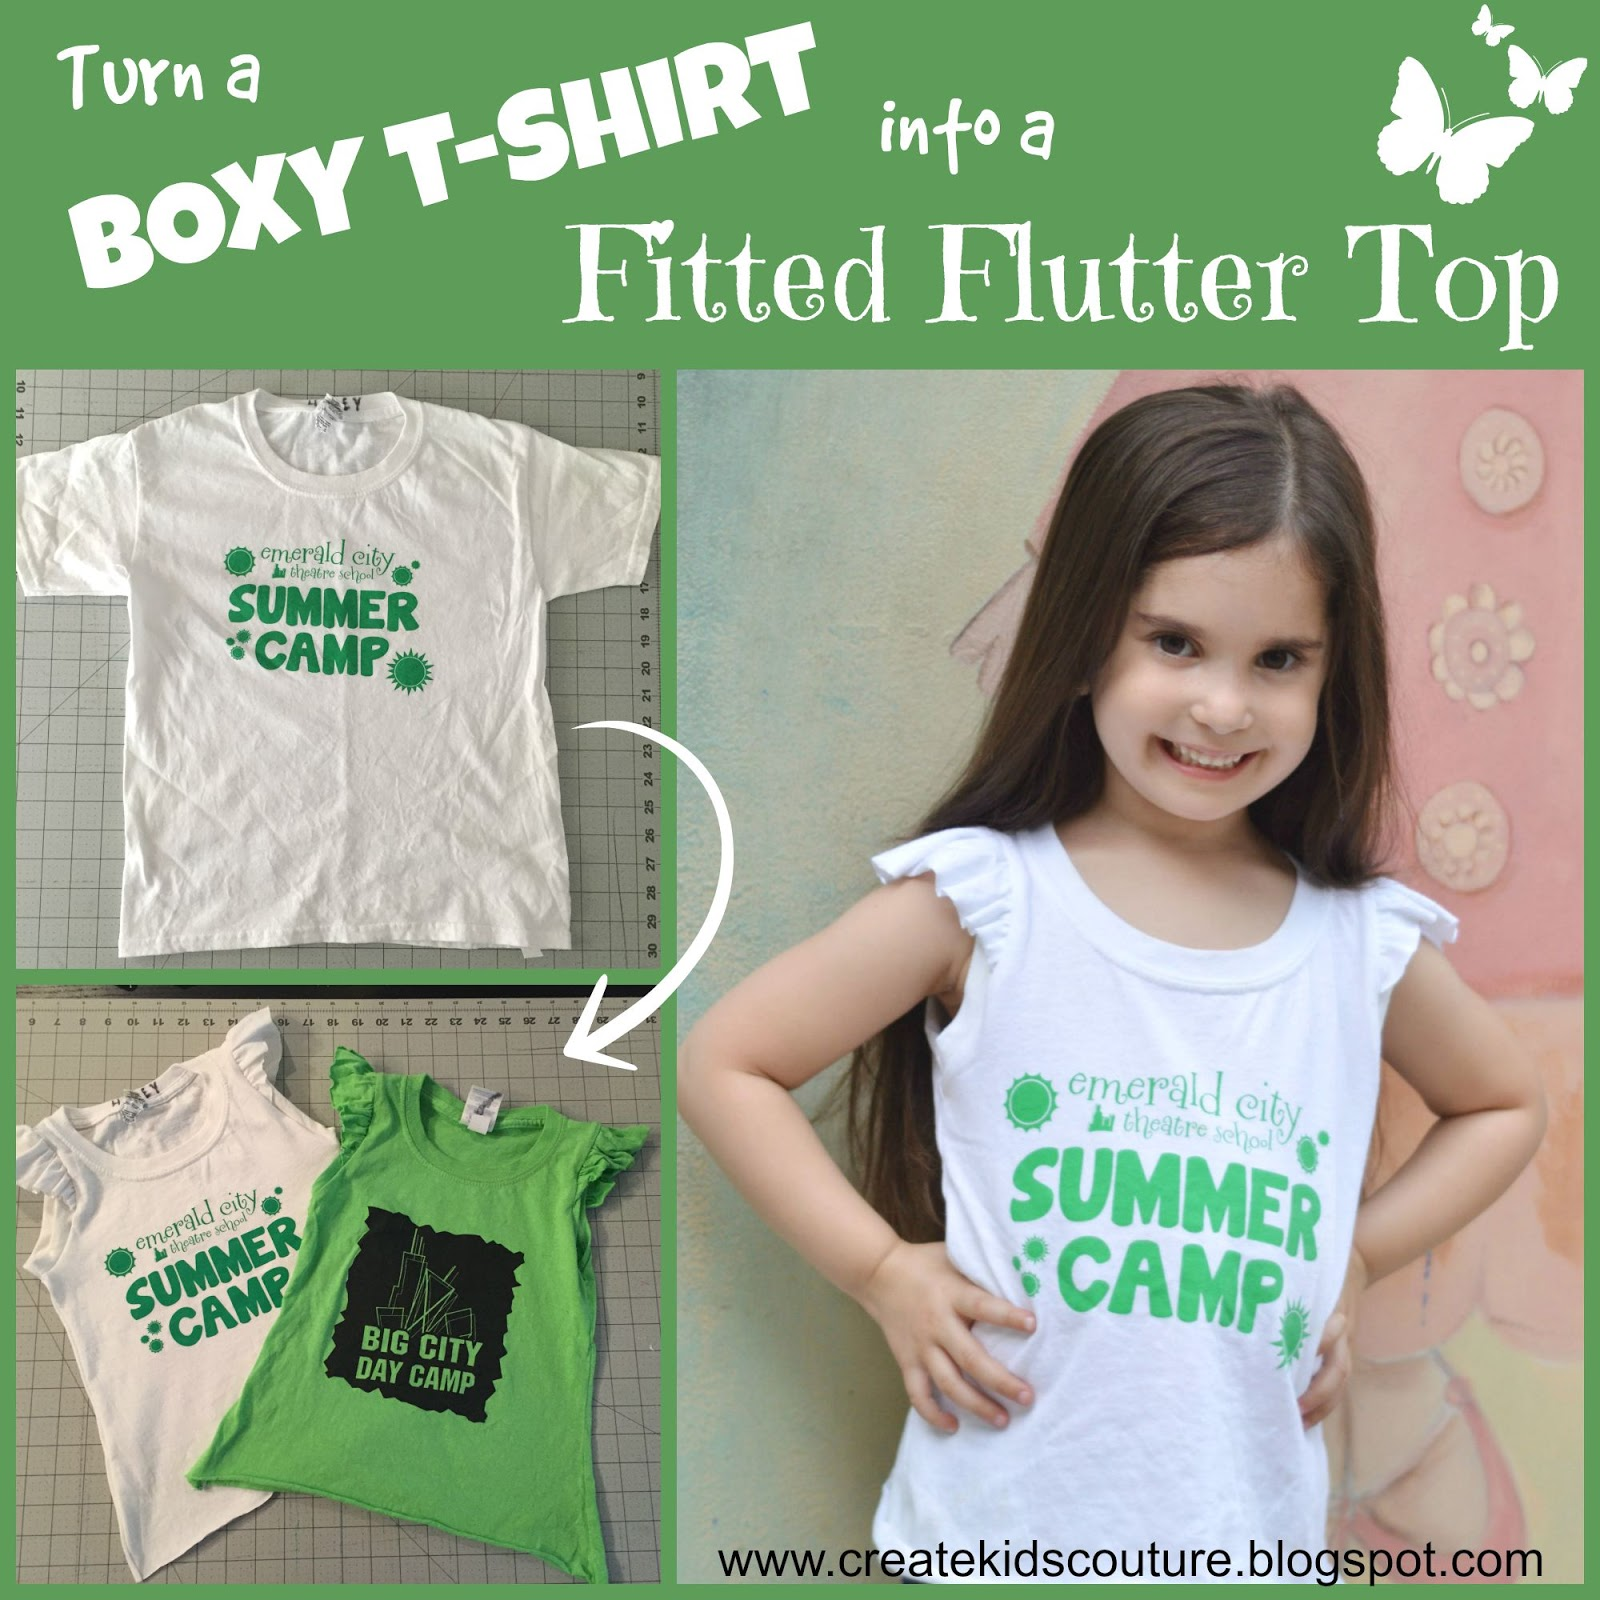 Create kids couture turning a boxy tee into a flutter sleeve top since you asked for more details i decided to write up a tutorial on how to turn an ordinary boxy kids shirt into a curvy top with flutters jeuxipadfo Images